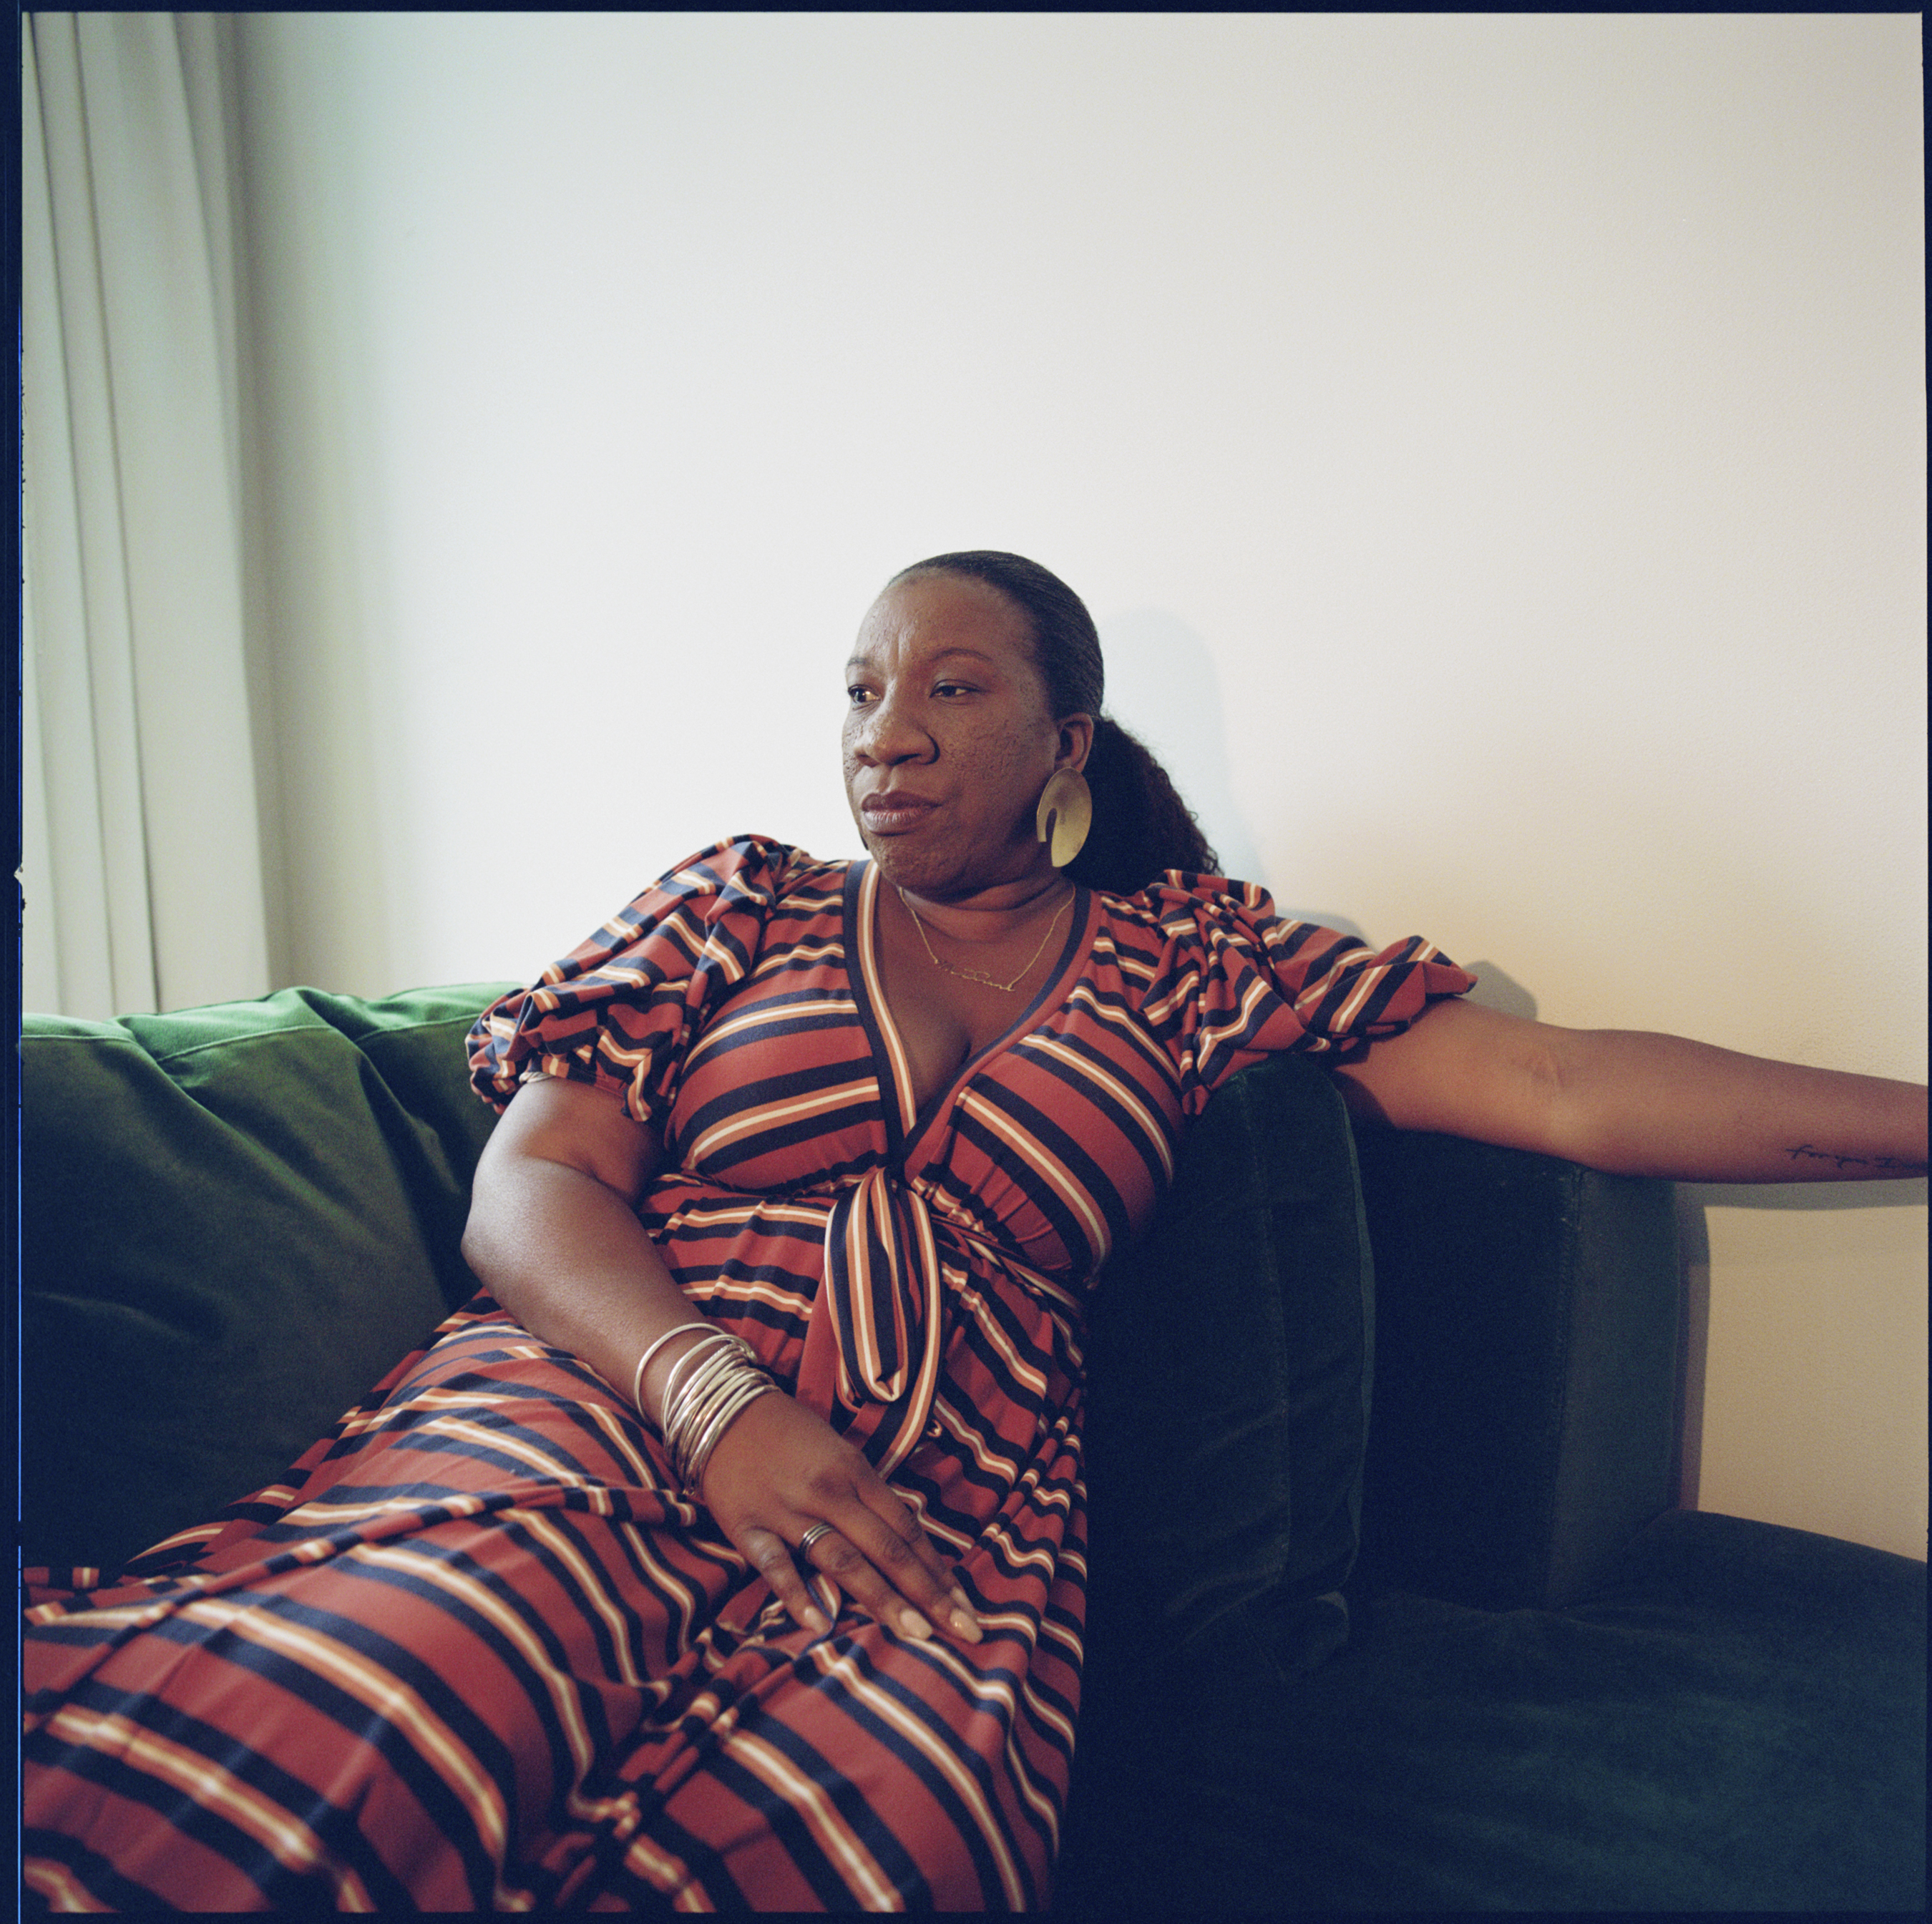 Tarana Burke, the founder of the MeToo movement, sitting on a couch in her house.